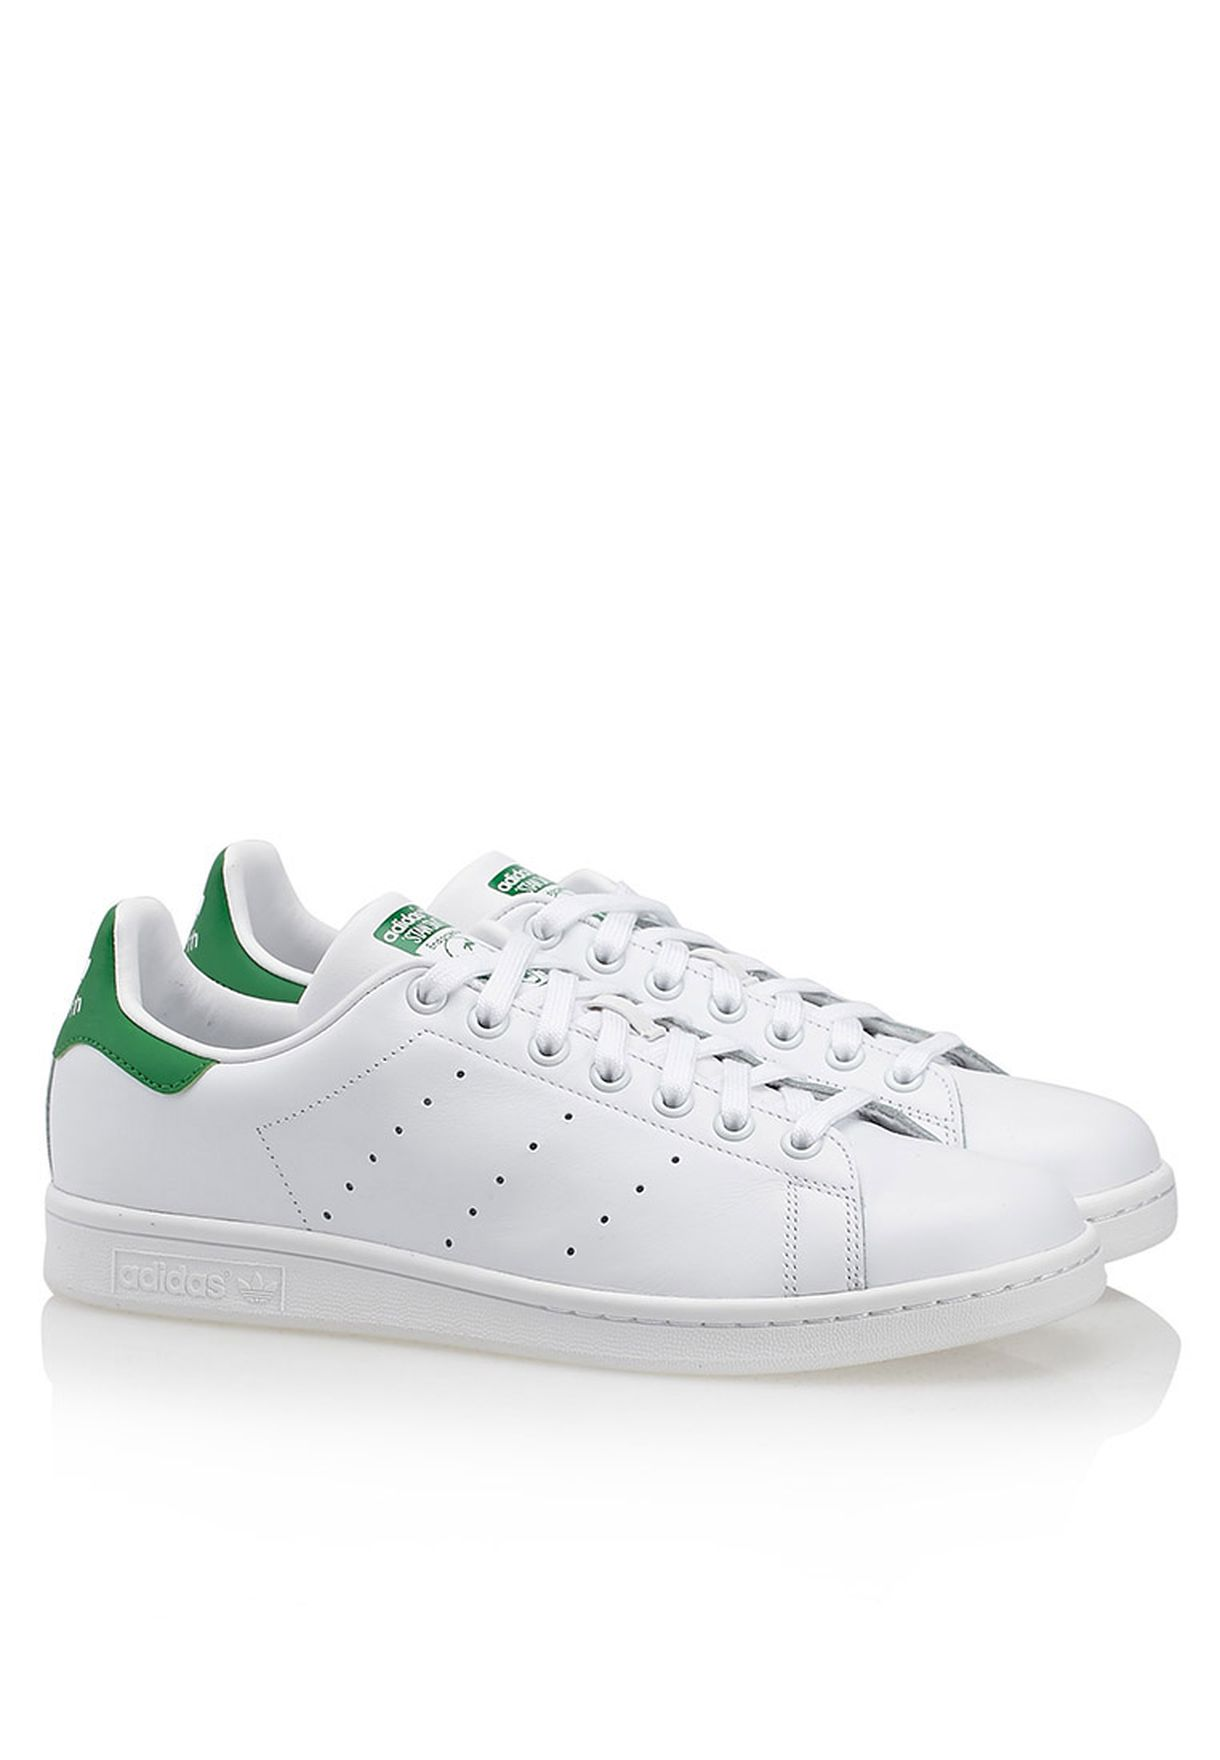 f599e6047c8 Shop adidas Originals white Stan Smith M20324 for Men in UAE ...